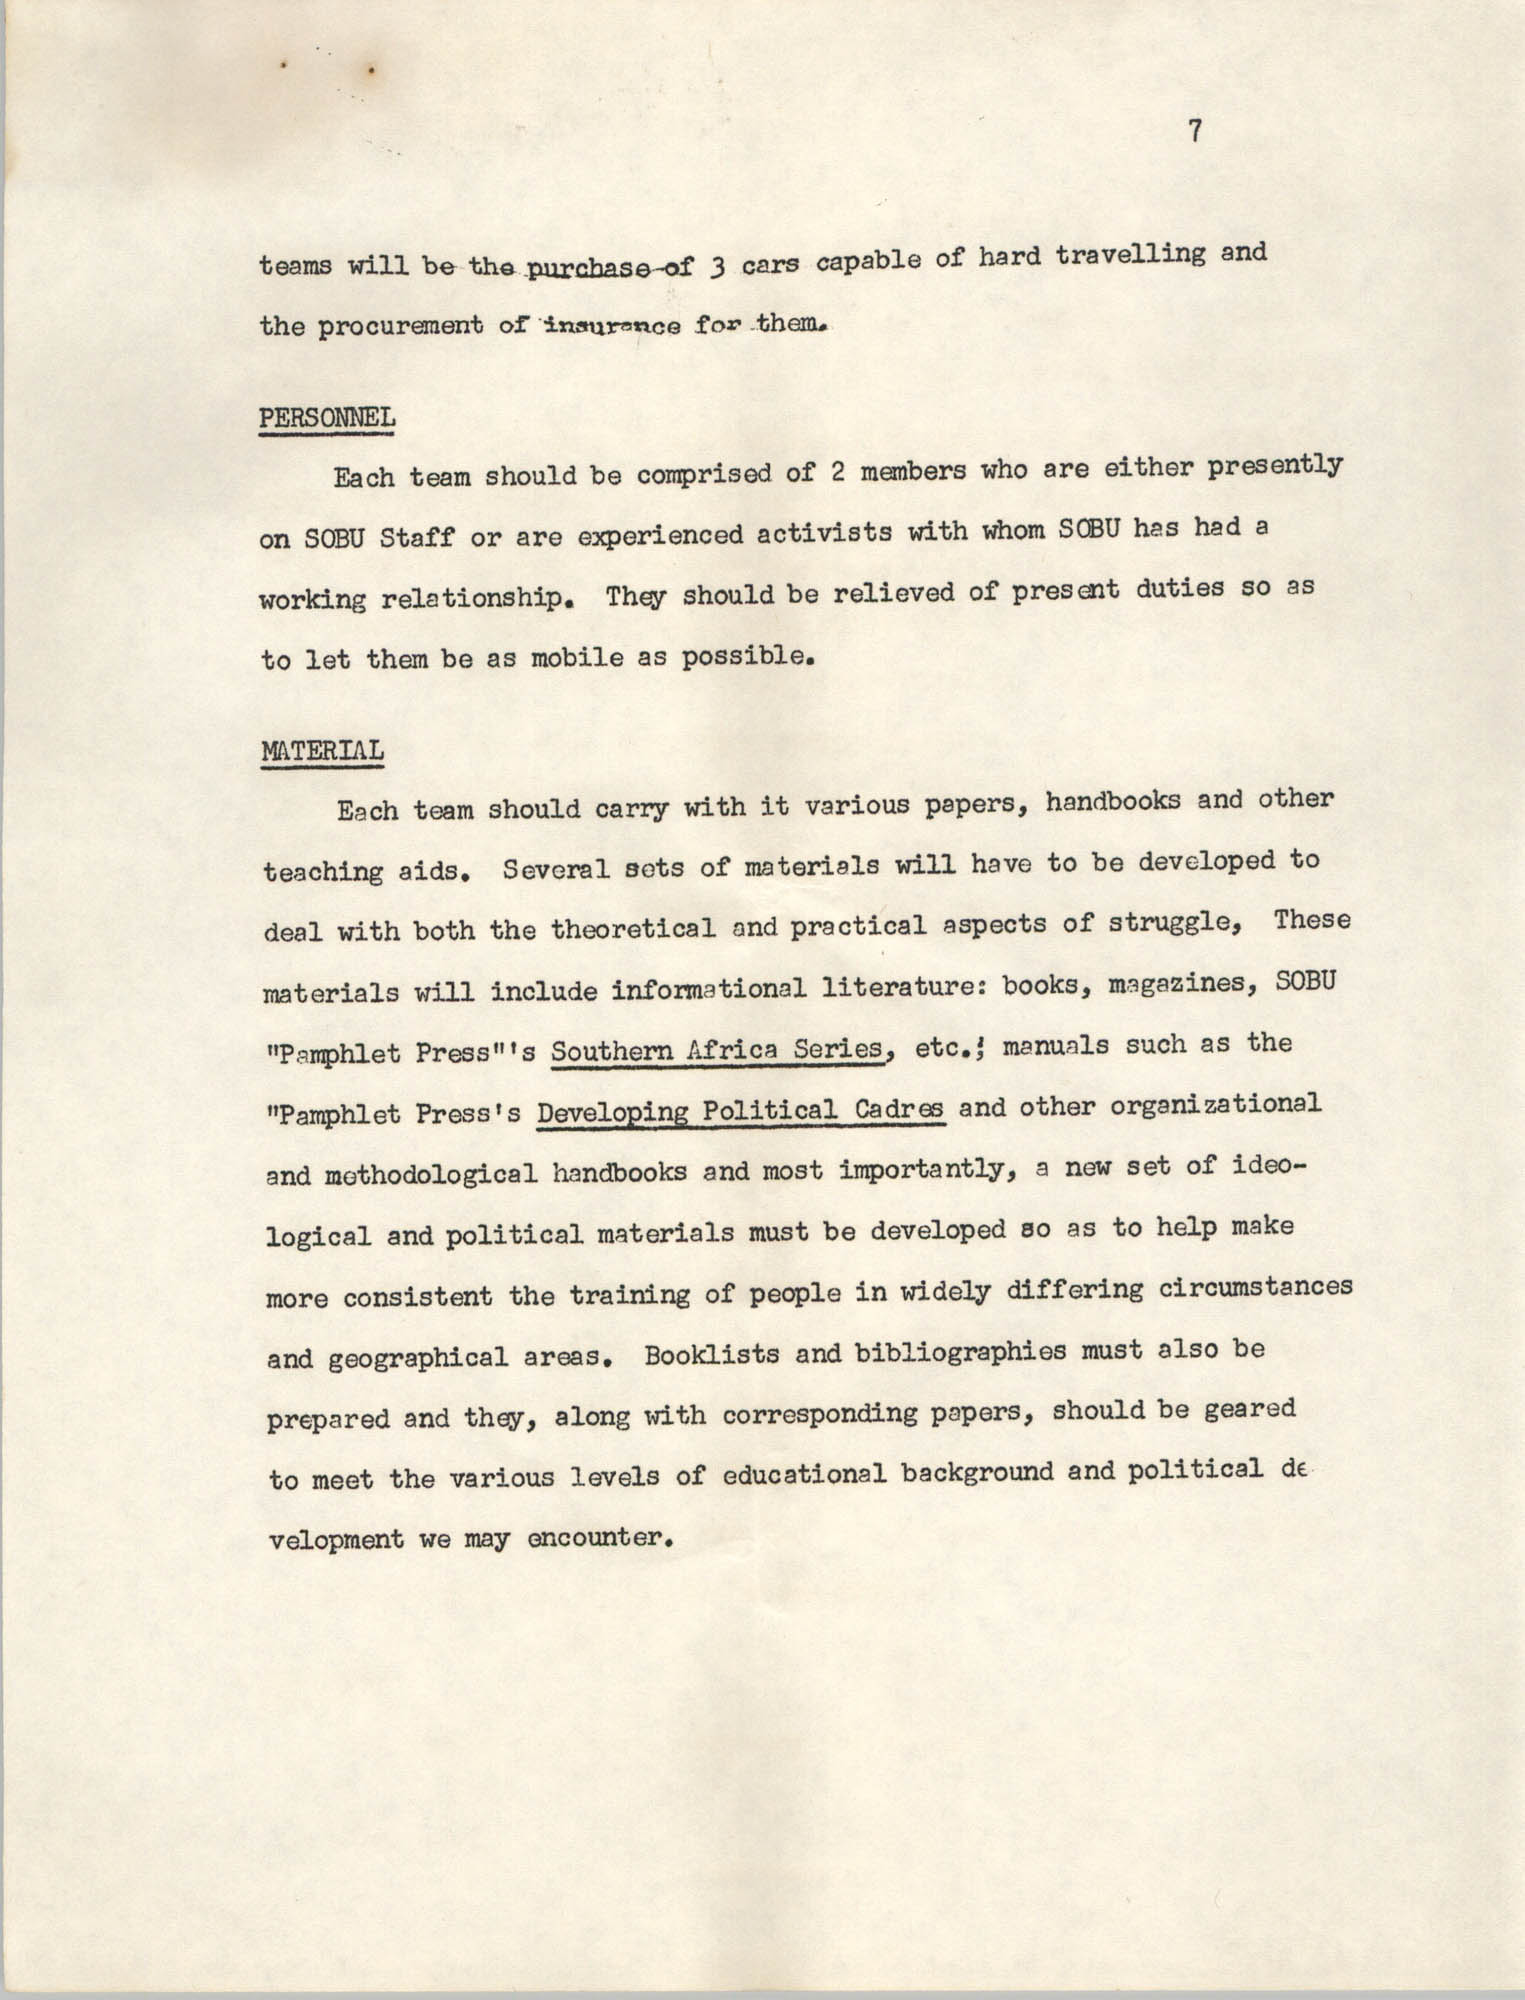 A Proposal for the Development of a Training Institute, Page 7